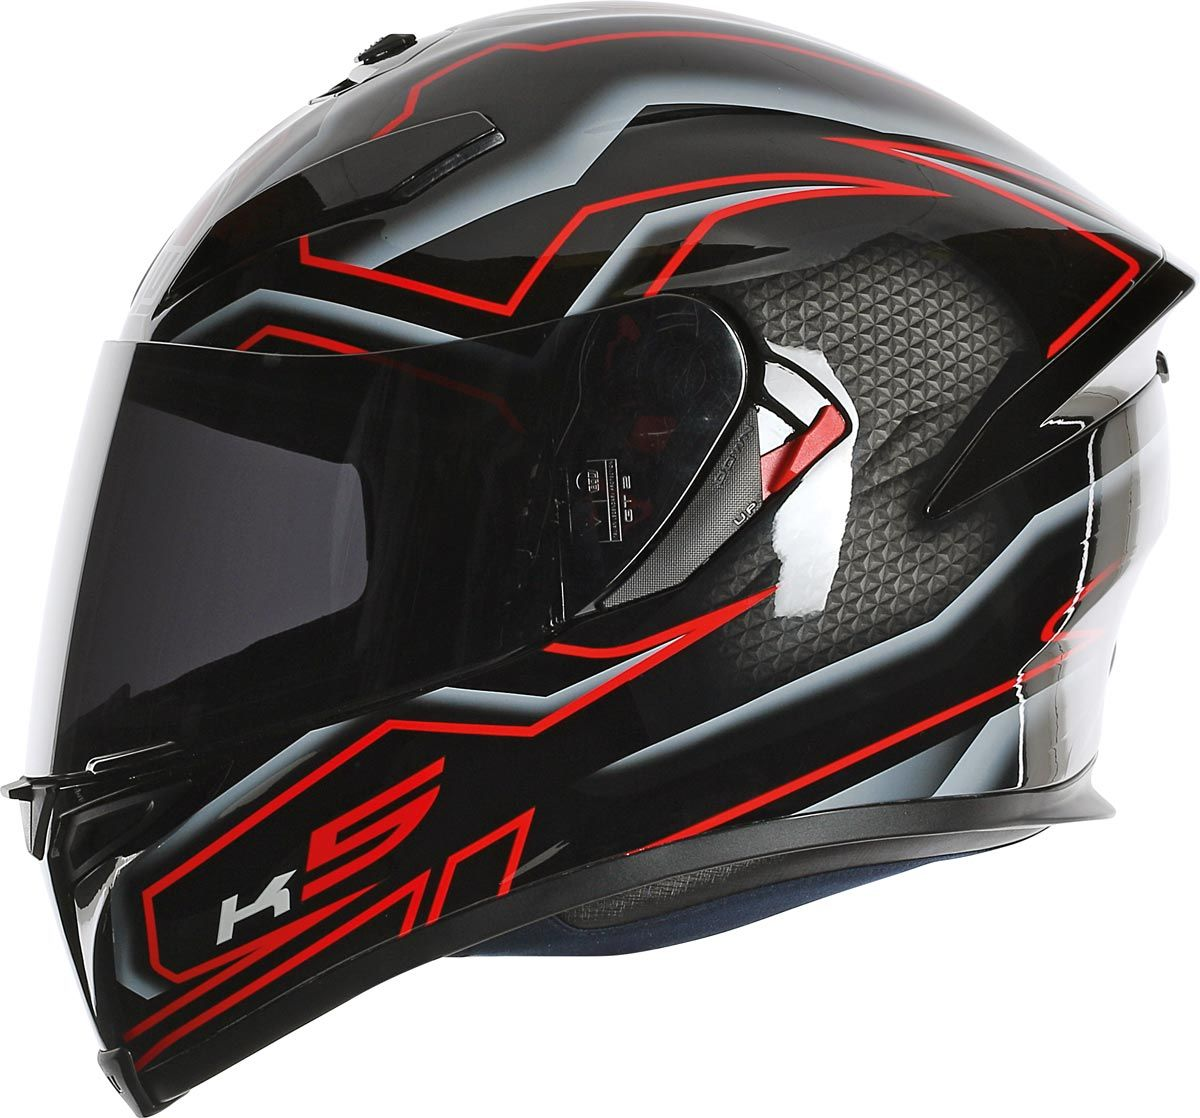 agv k 5 l 39 int gral sur quip en version 2015 iron horse pinterest casque integrale. Black Bedroom Furniture Sets. Home Design Ideas